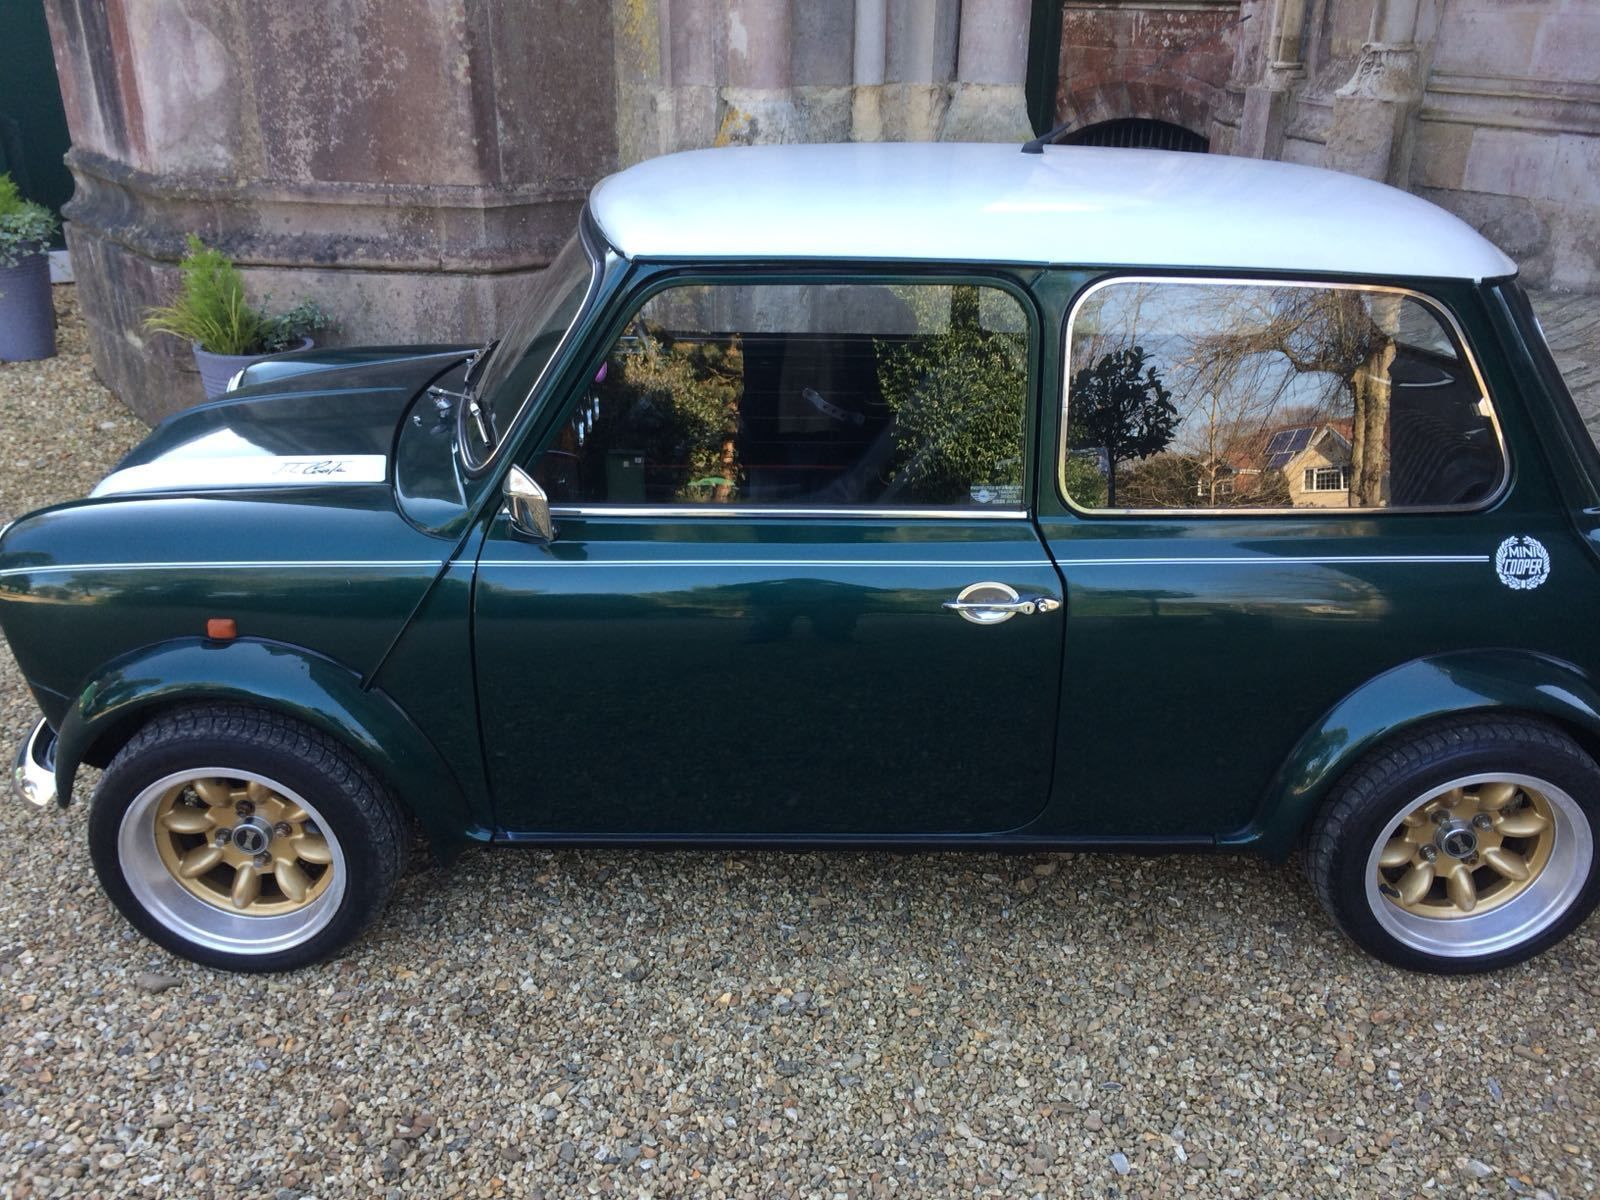 Ebay Clic 1991 Mini Cooper British Racing Green Carb Model Long Mot Clicmini